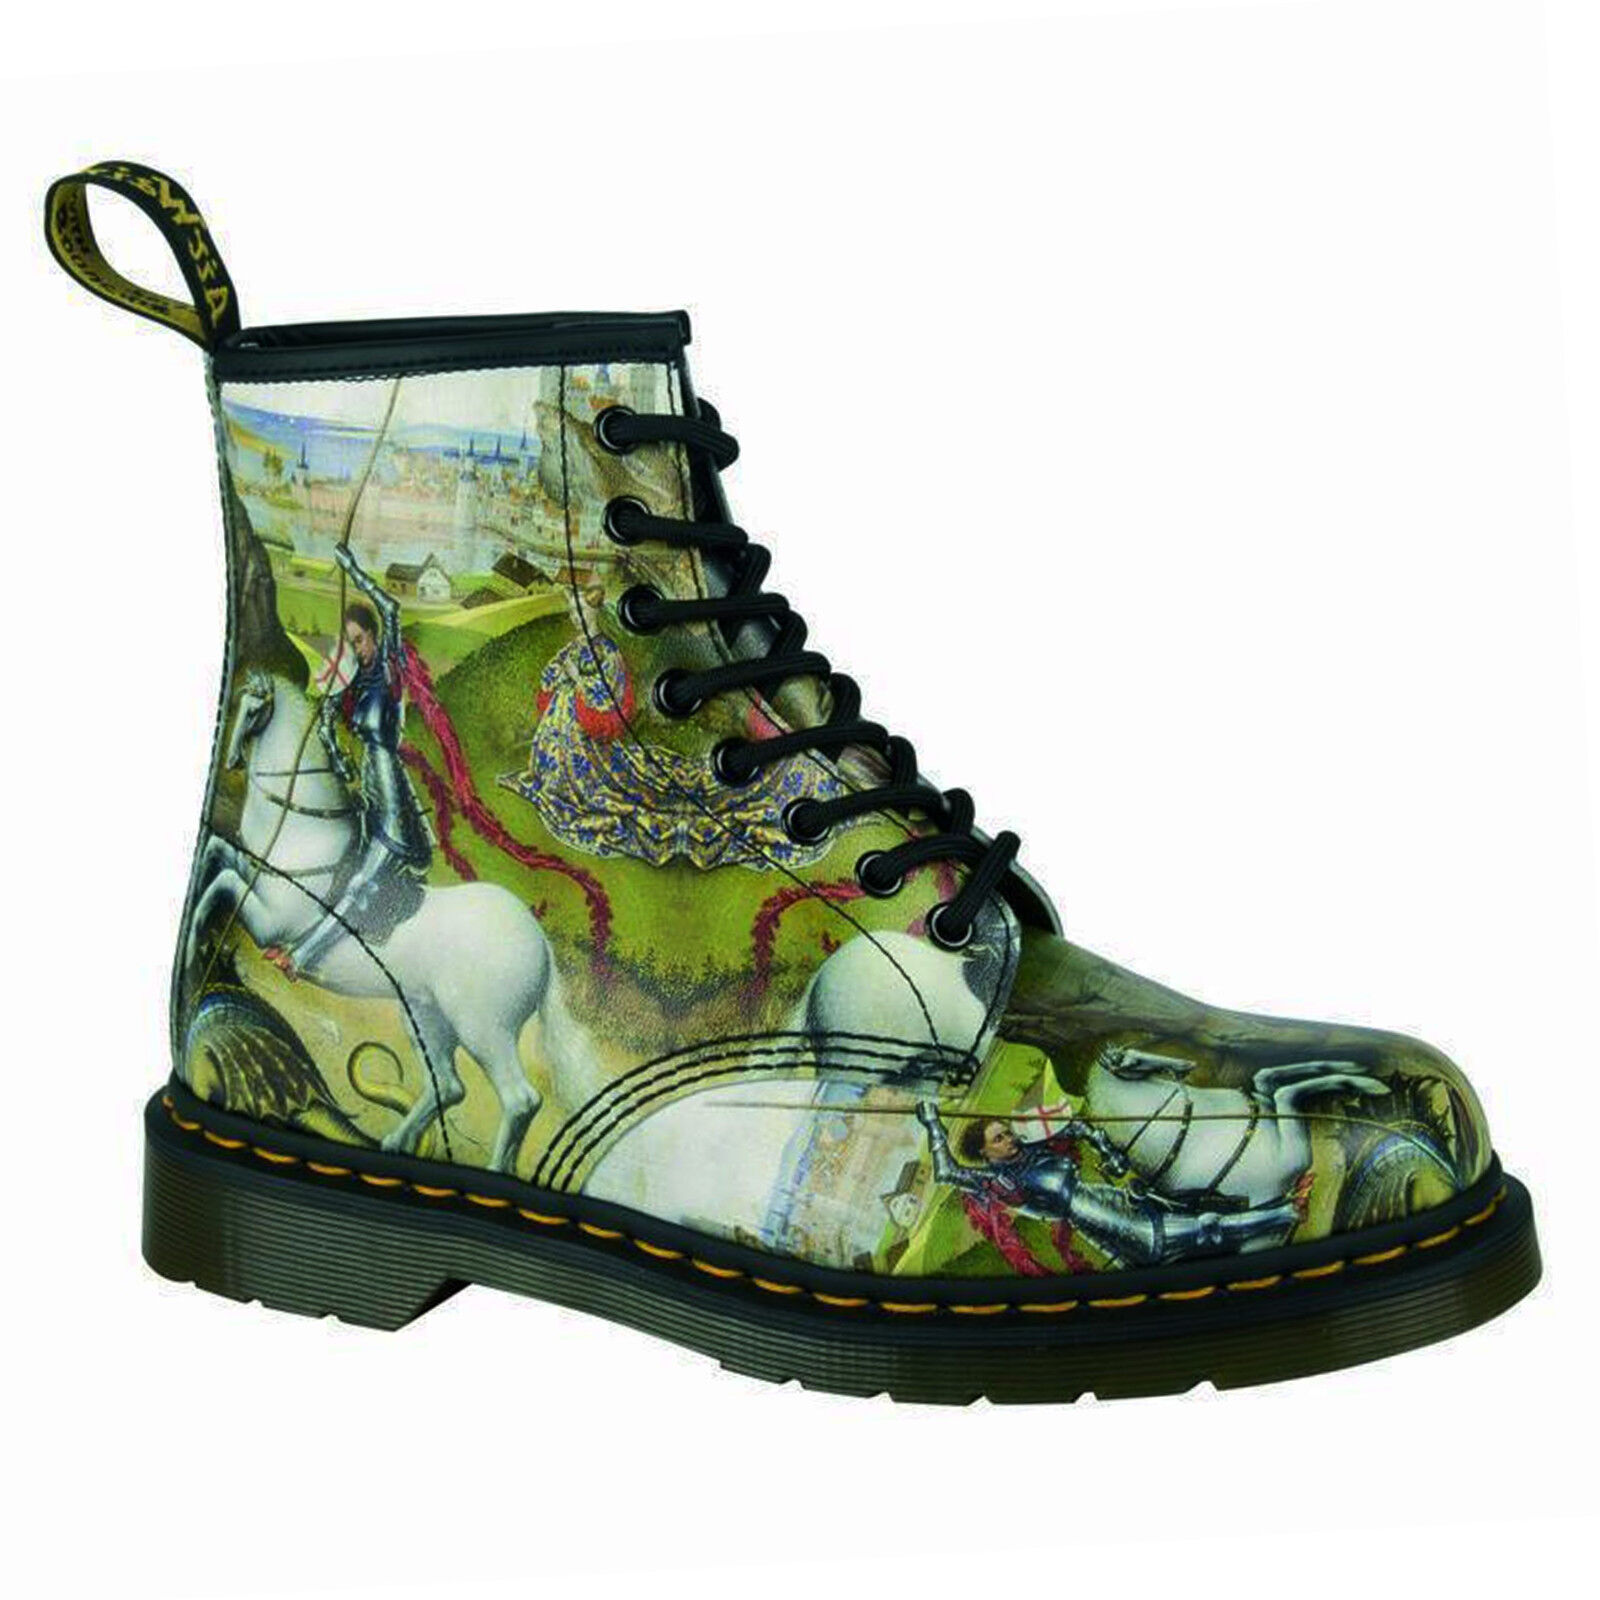 Dr. Martens - 1460 George & Dragon Backhand Zapatos Multi Docs Rarität 8-Loch Zapatos Backhand cc240f